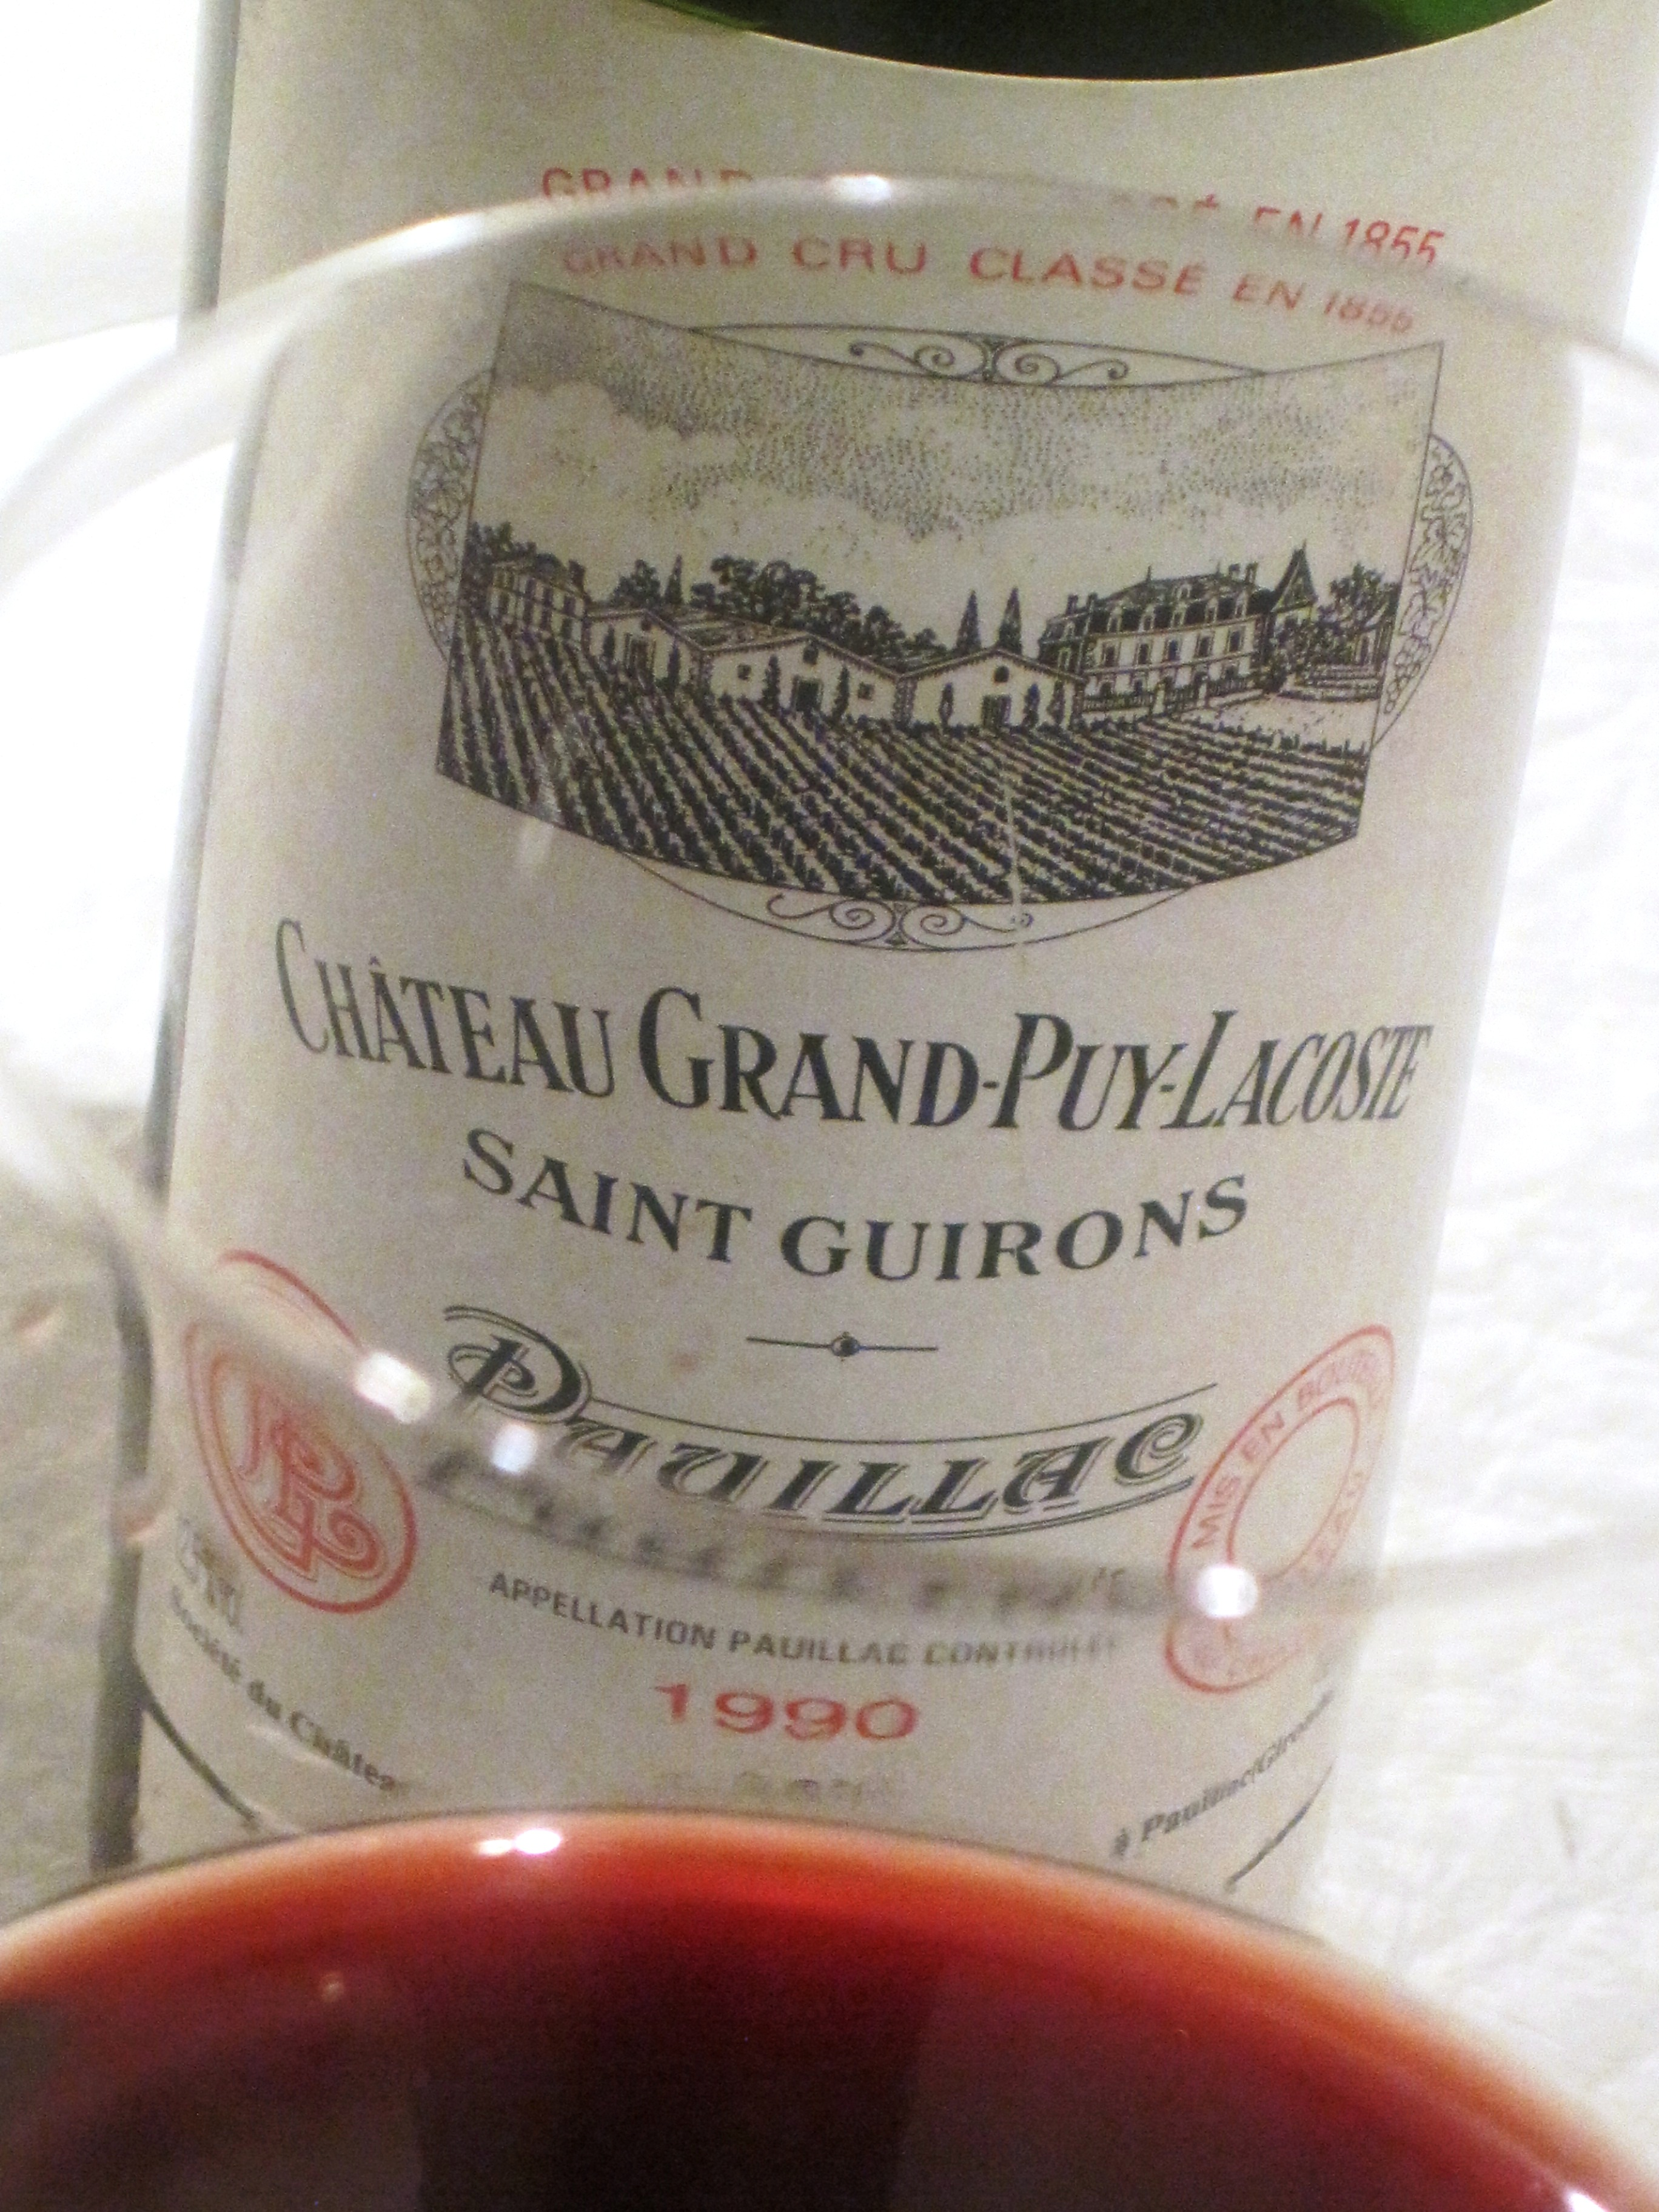 Le Monde gets Bordeaux Wine News from The Wine Cellar Insider!